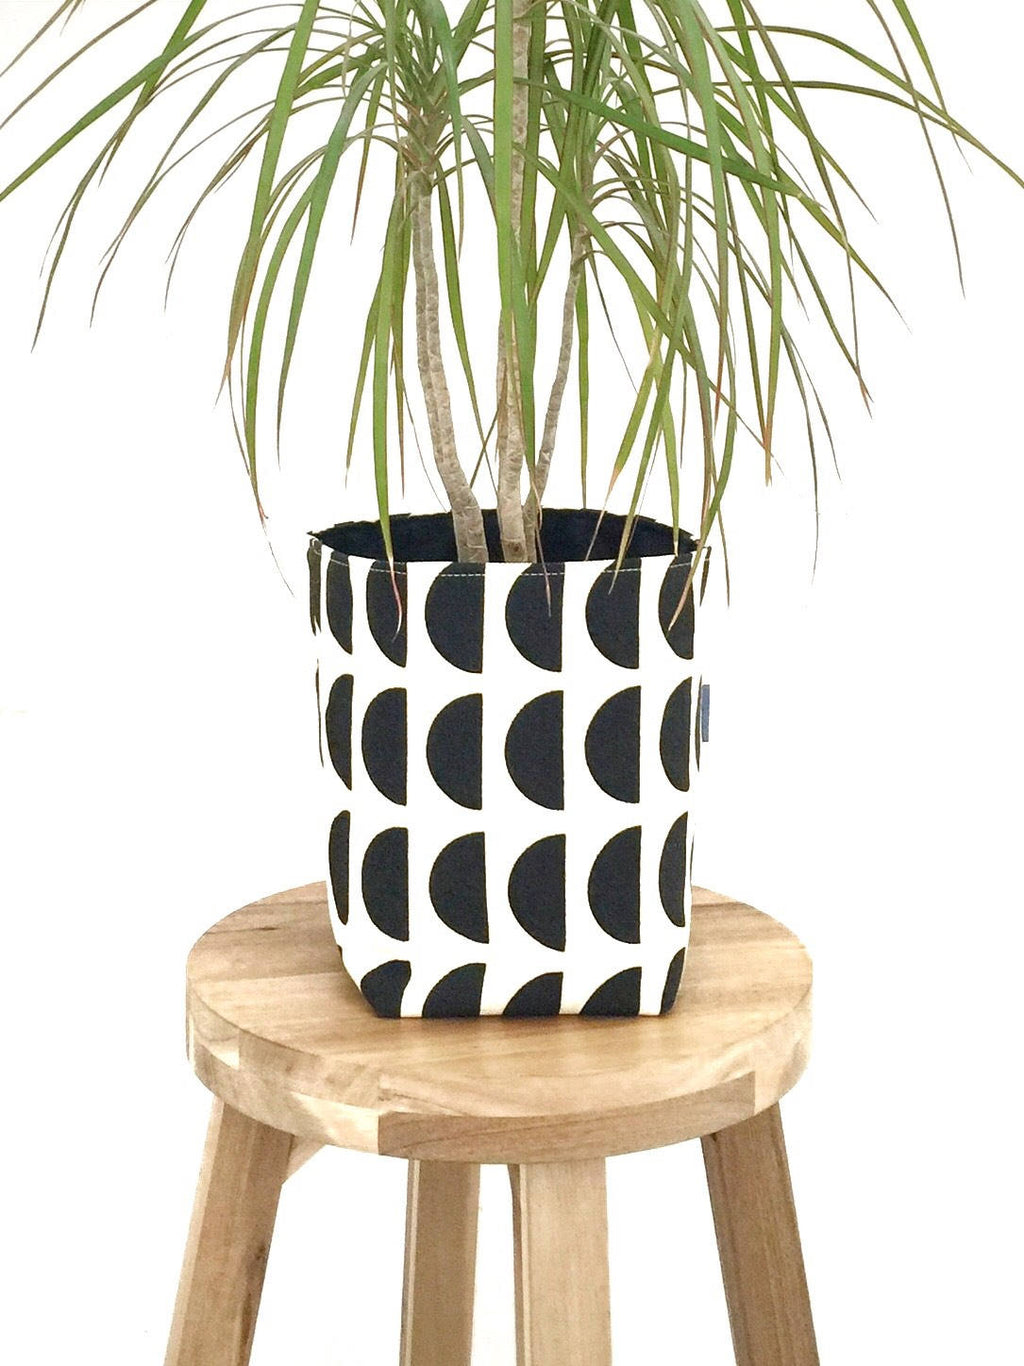 Fabric Basket - Black Pop